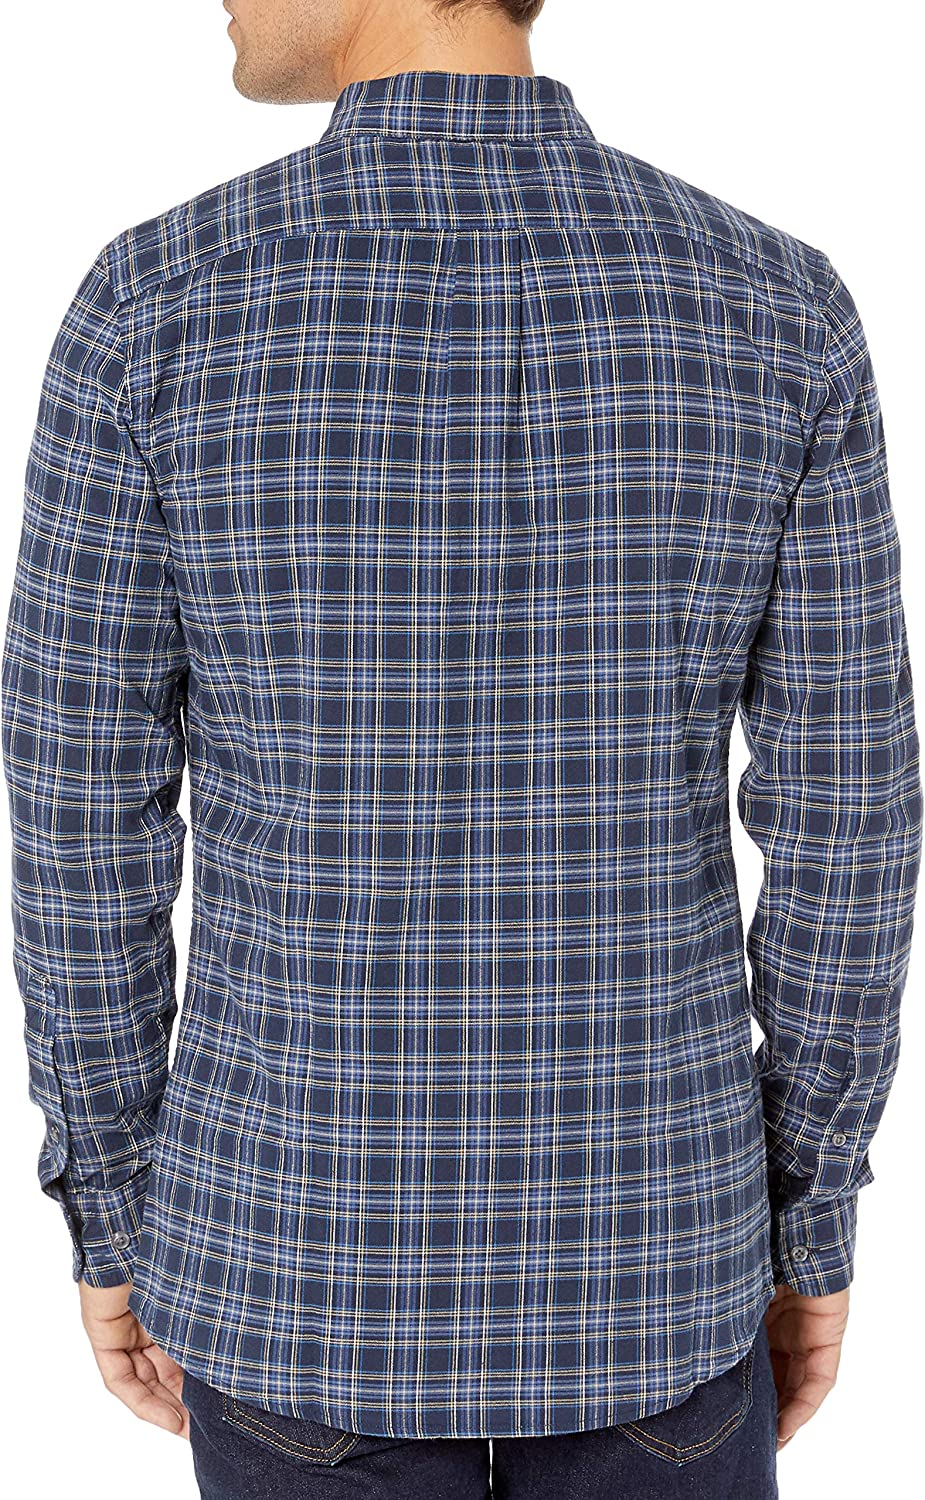 Goodthreads Mens Slim-Fit Long-Sleeve Plaid Oxford Shirt Brand